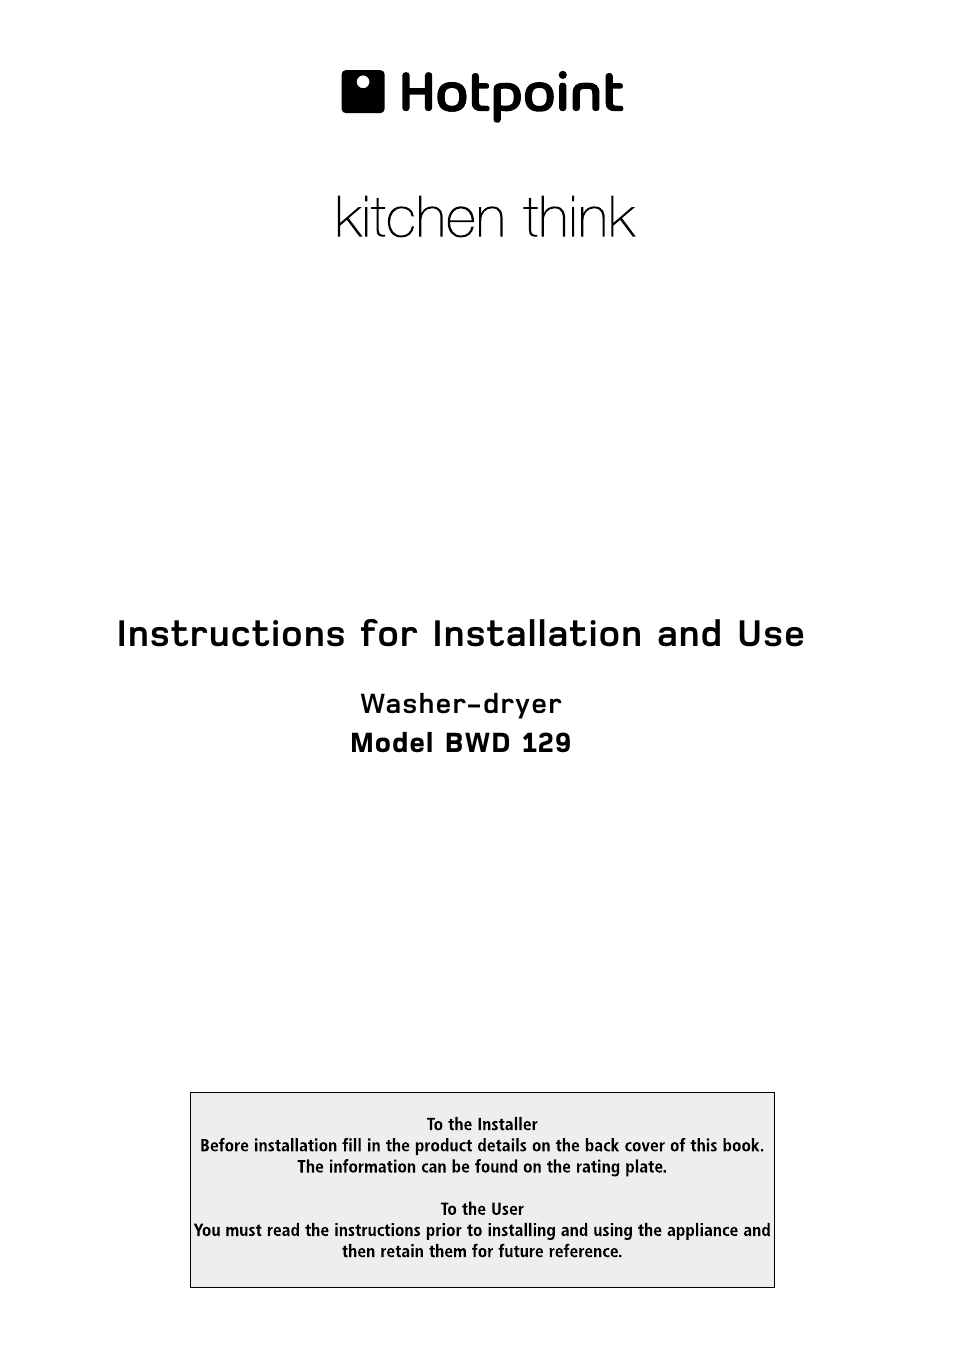 hotpoint bwd 129 user manual 20 pages rh manualsdir com